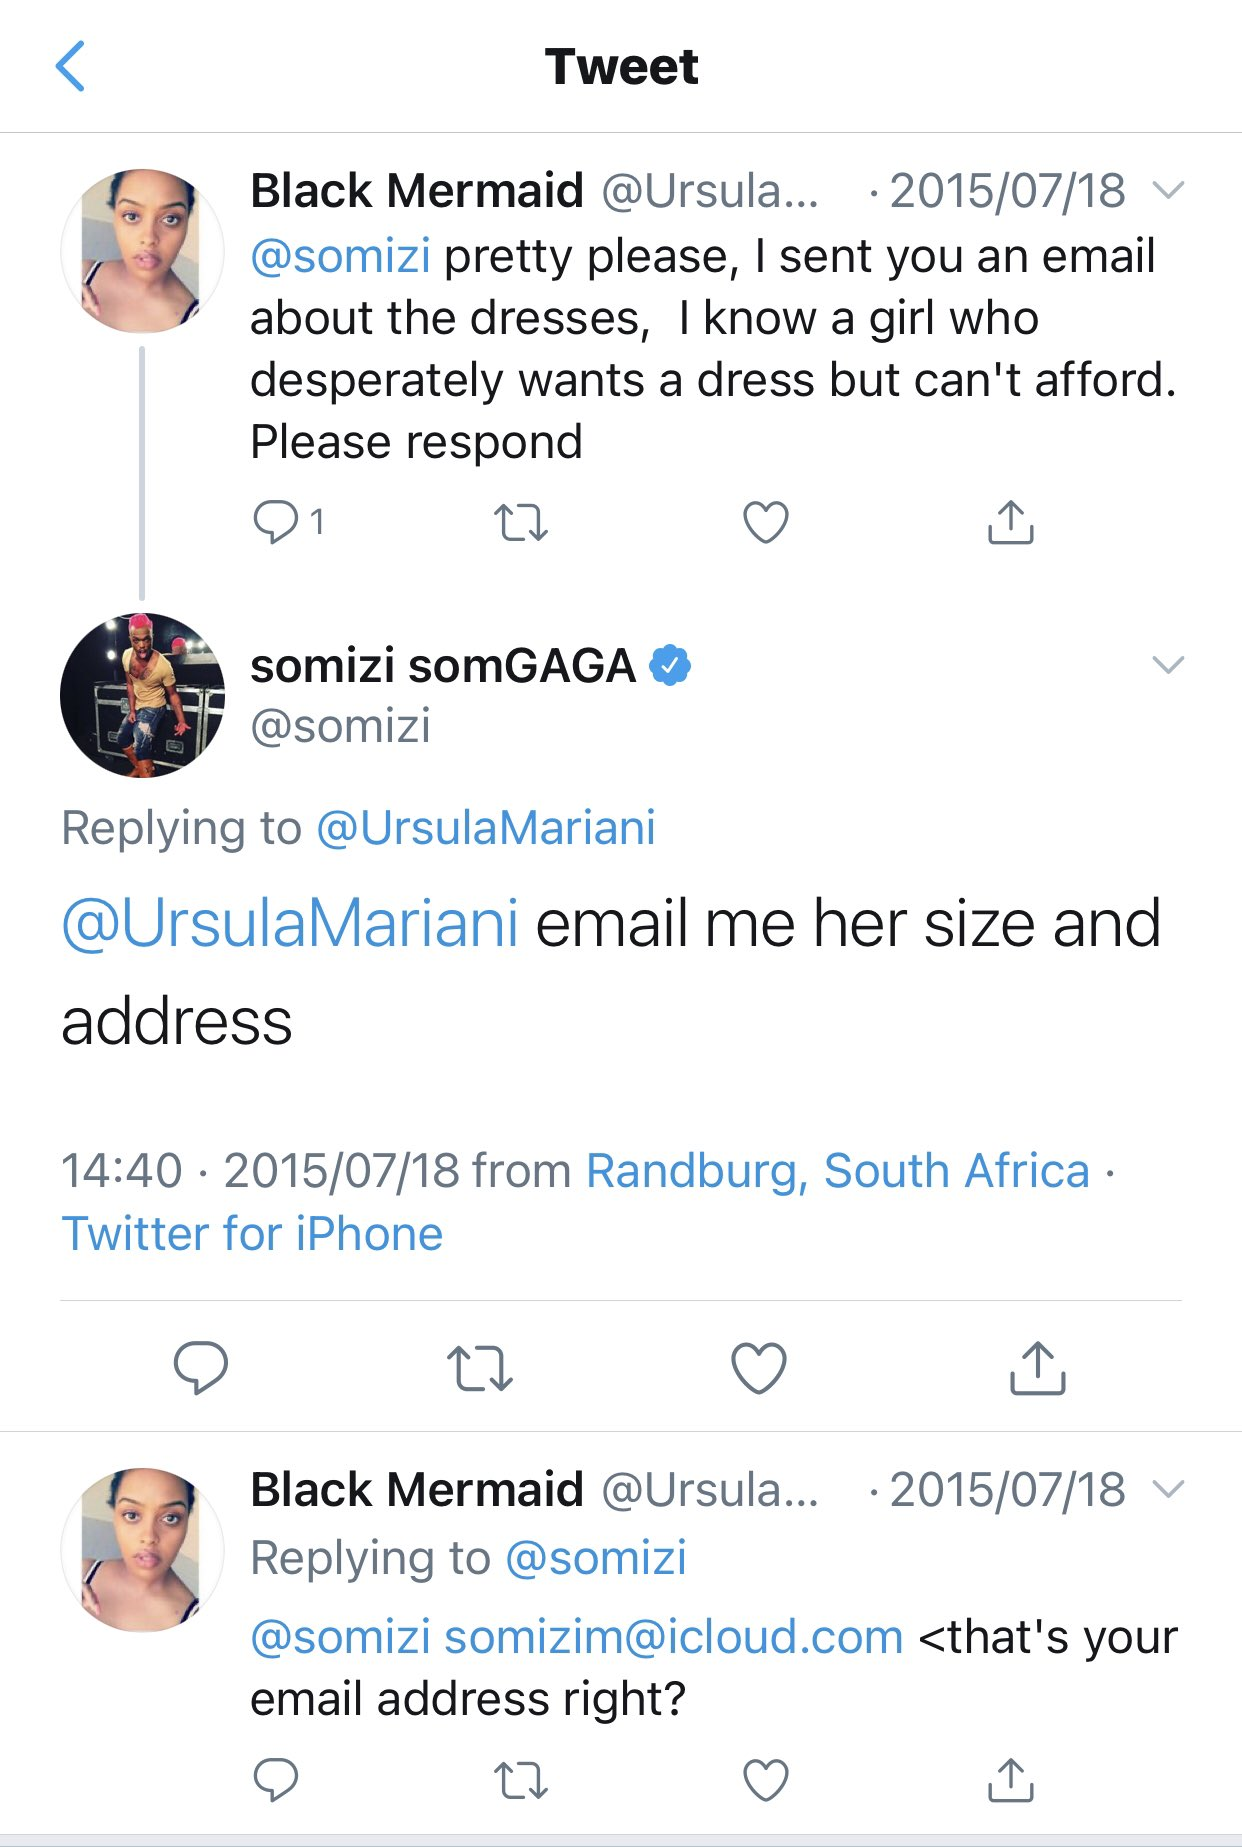 Somizi Caught Lying About Not Using Email For 5 Years4